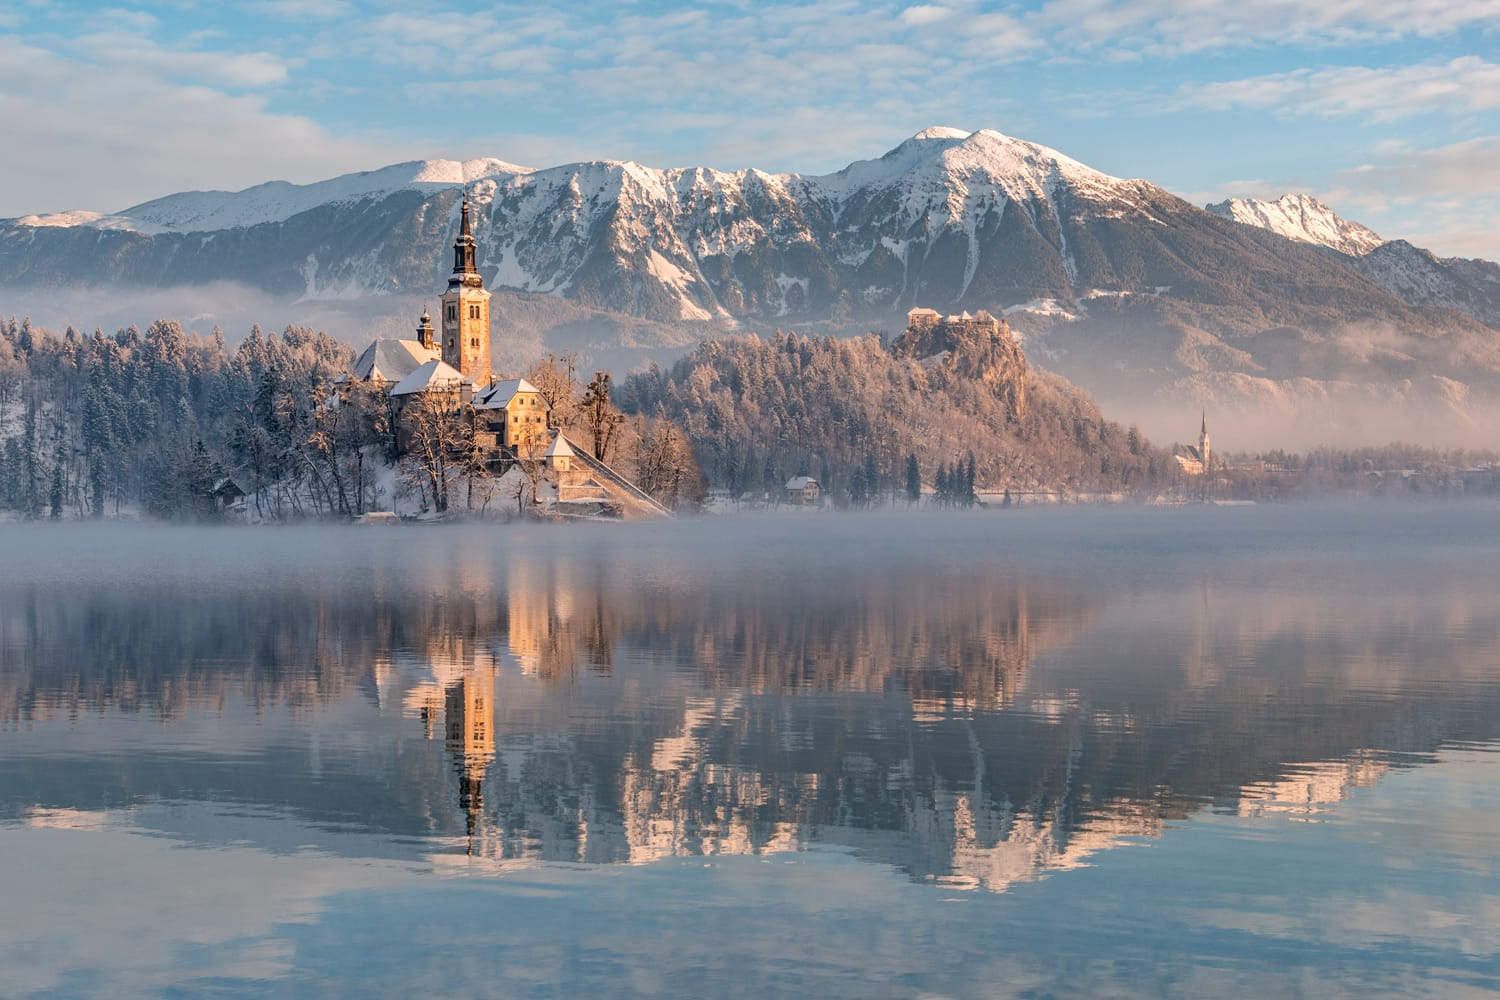 Lake Bled with the church and the castle on a calm winter morning